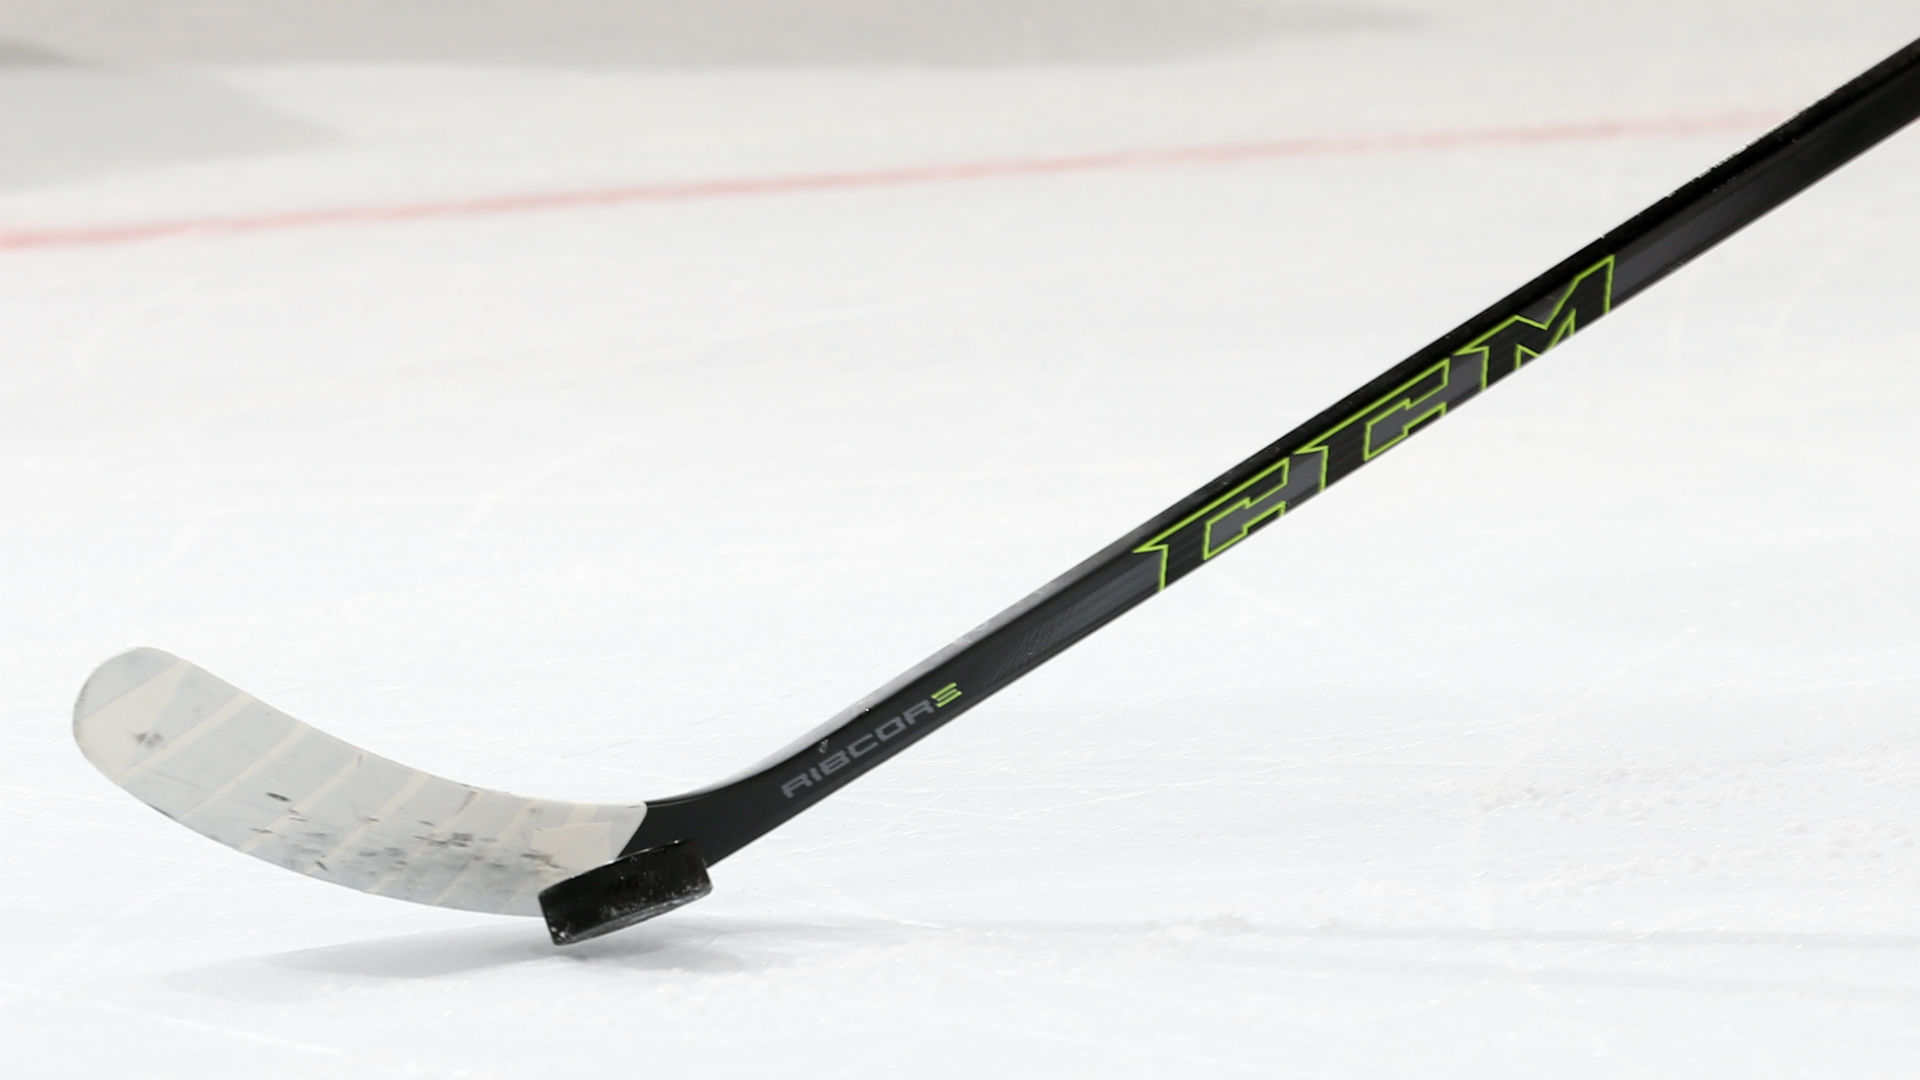 Hockey-stick-62116-usnews-getty-ftr_1e8wdr4u3pi1310yjsqqa61hg8